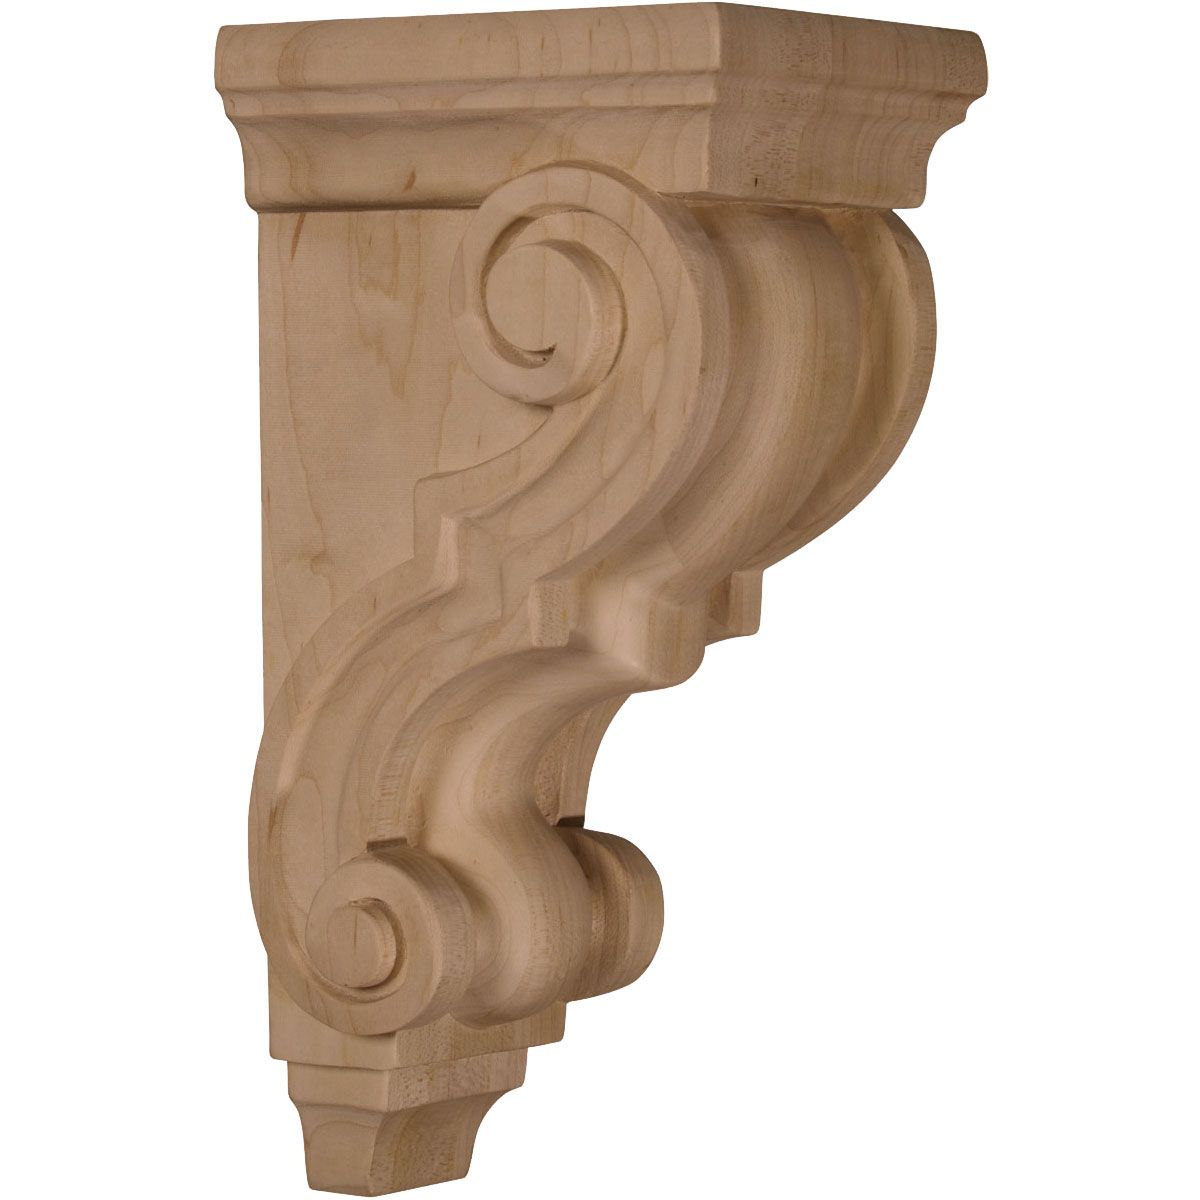 Enjoy The Warmth And Beauty Of Carved Wood Corbels. With The Proper  Installation, These Wood Brackets Can Support Up To Which Gives You The  Flexibility To ...